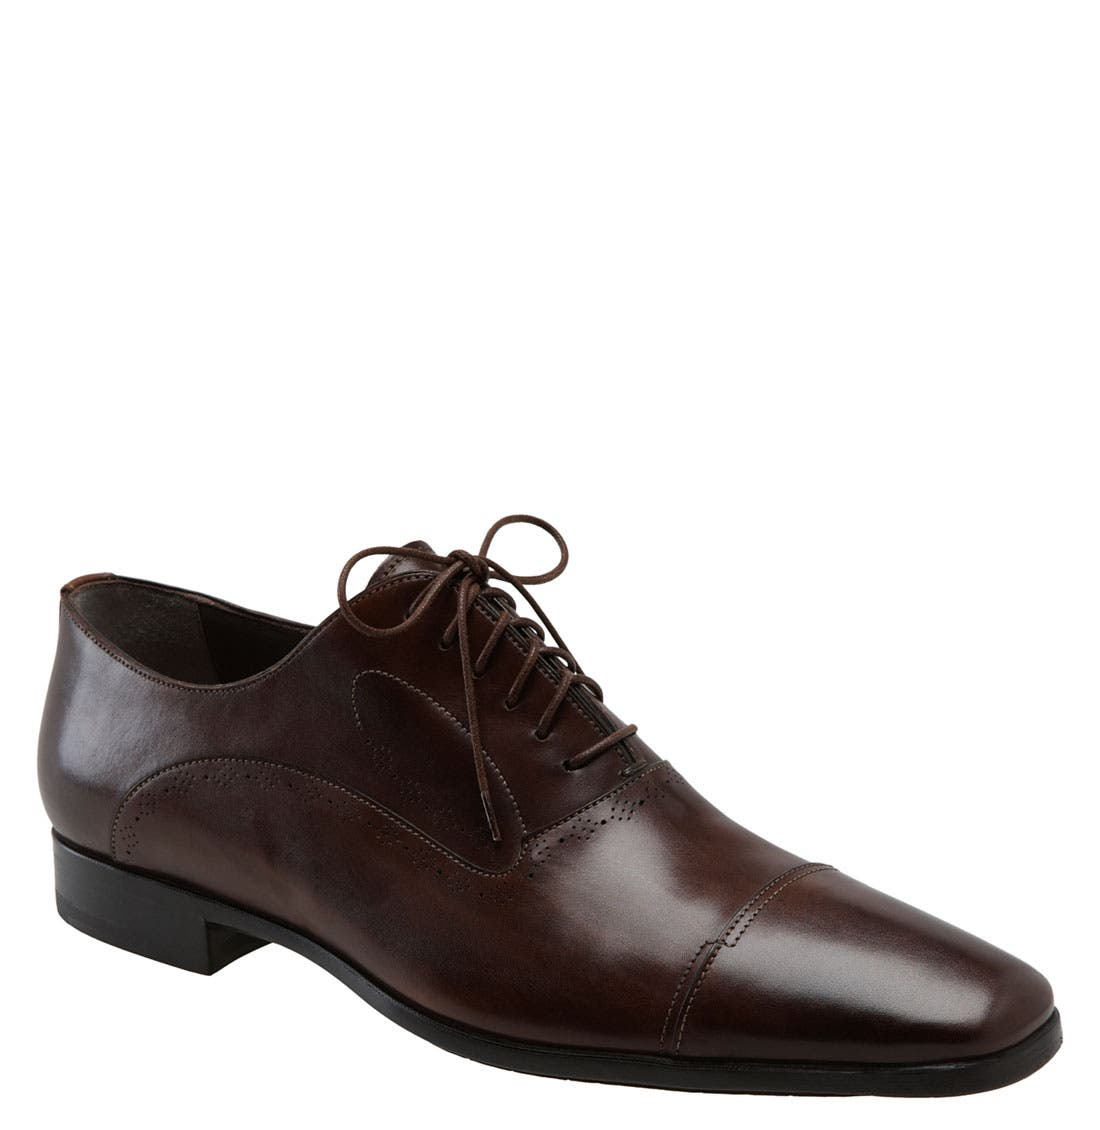 Alternate Image 1 Selected - Santoni 'Orrin' Cap Toe Oxford